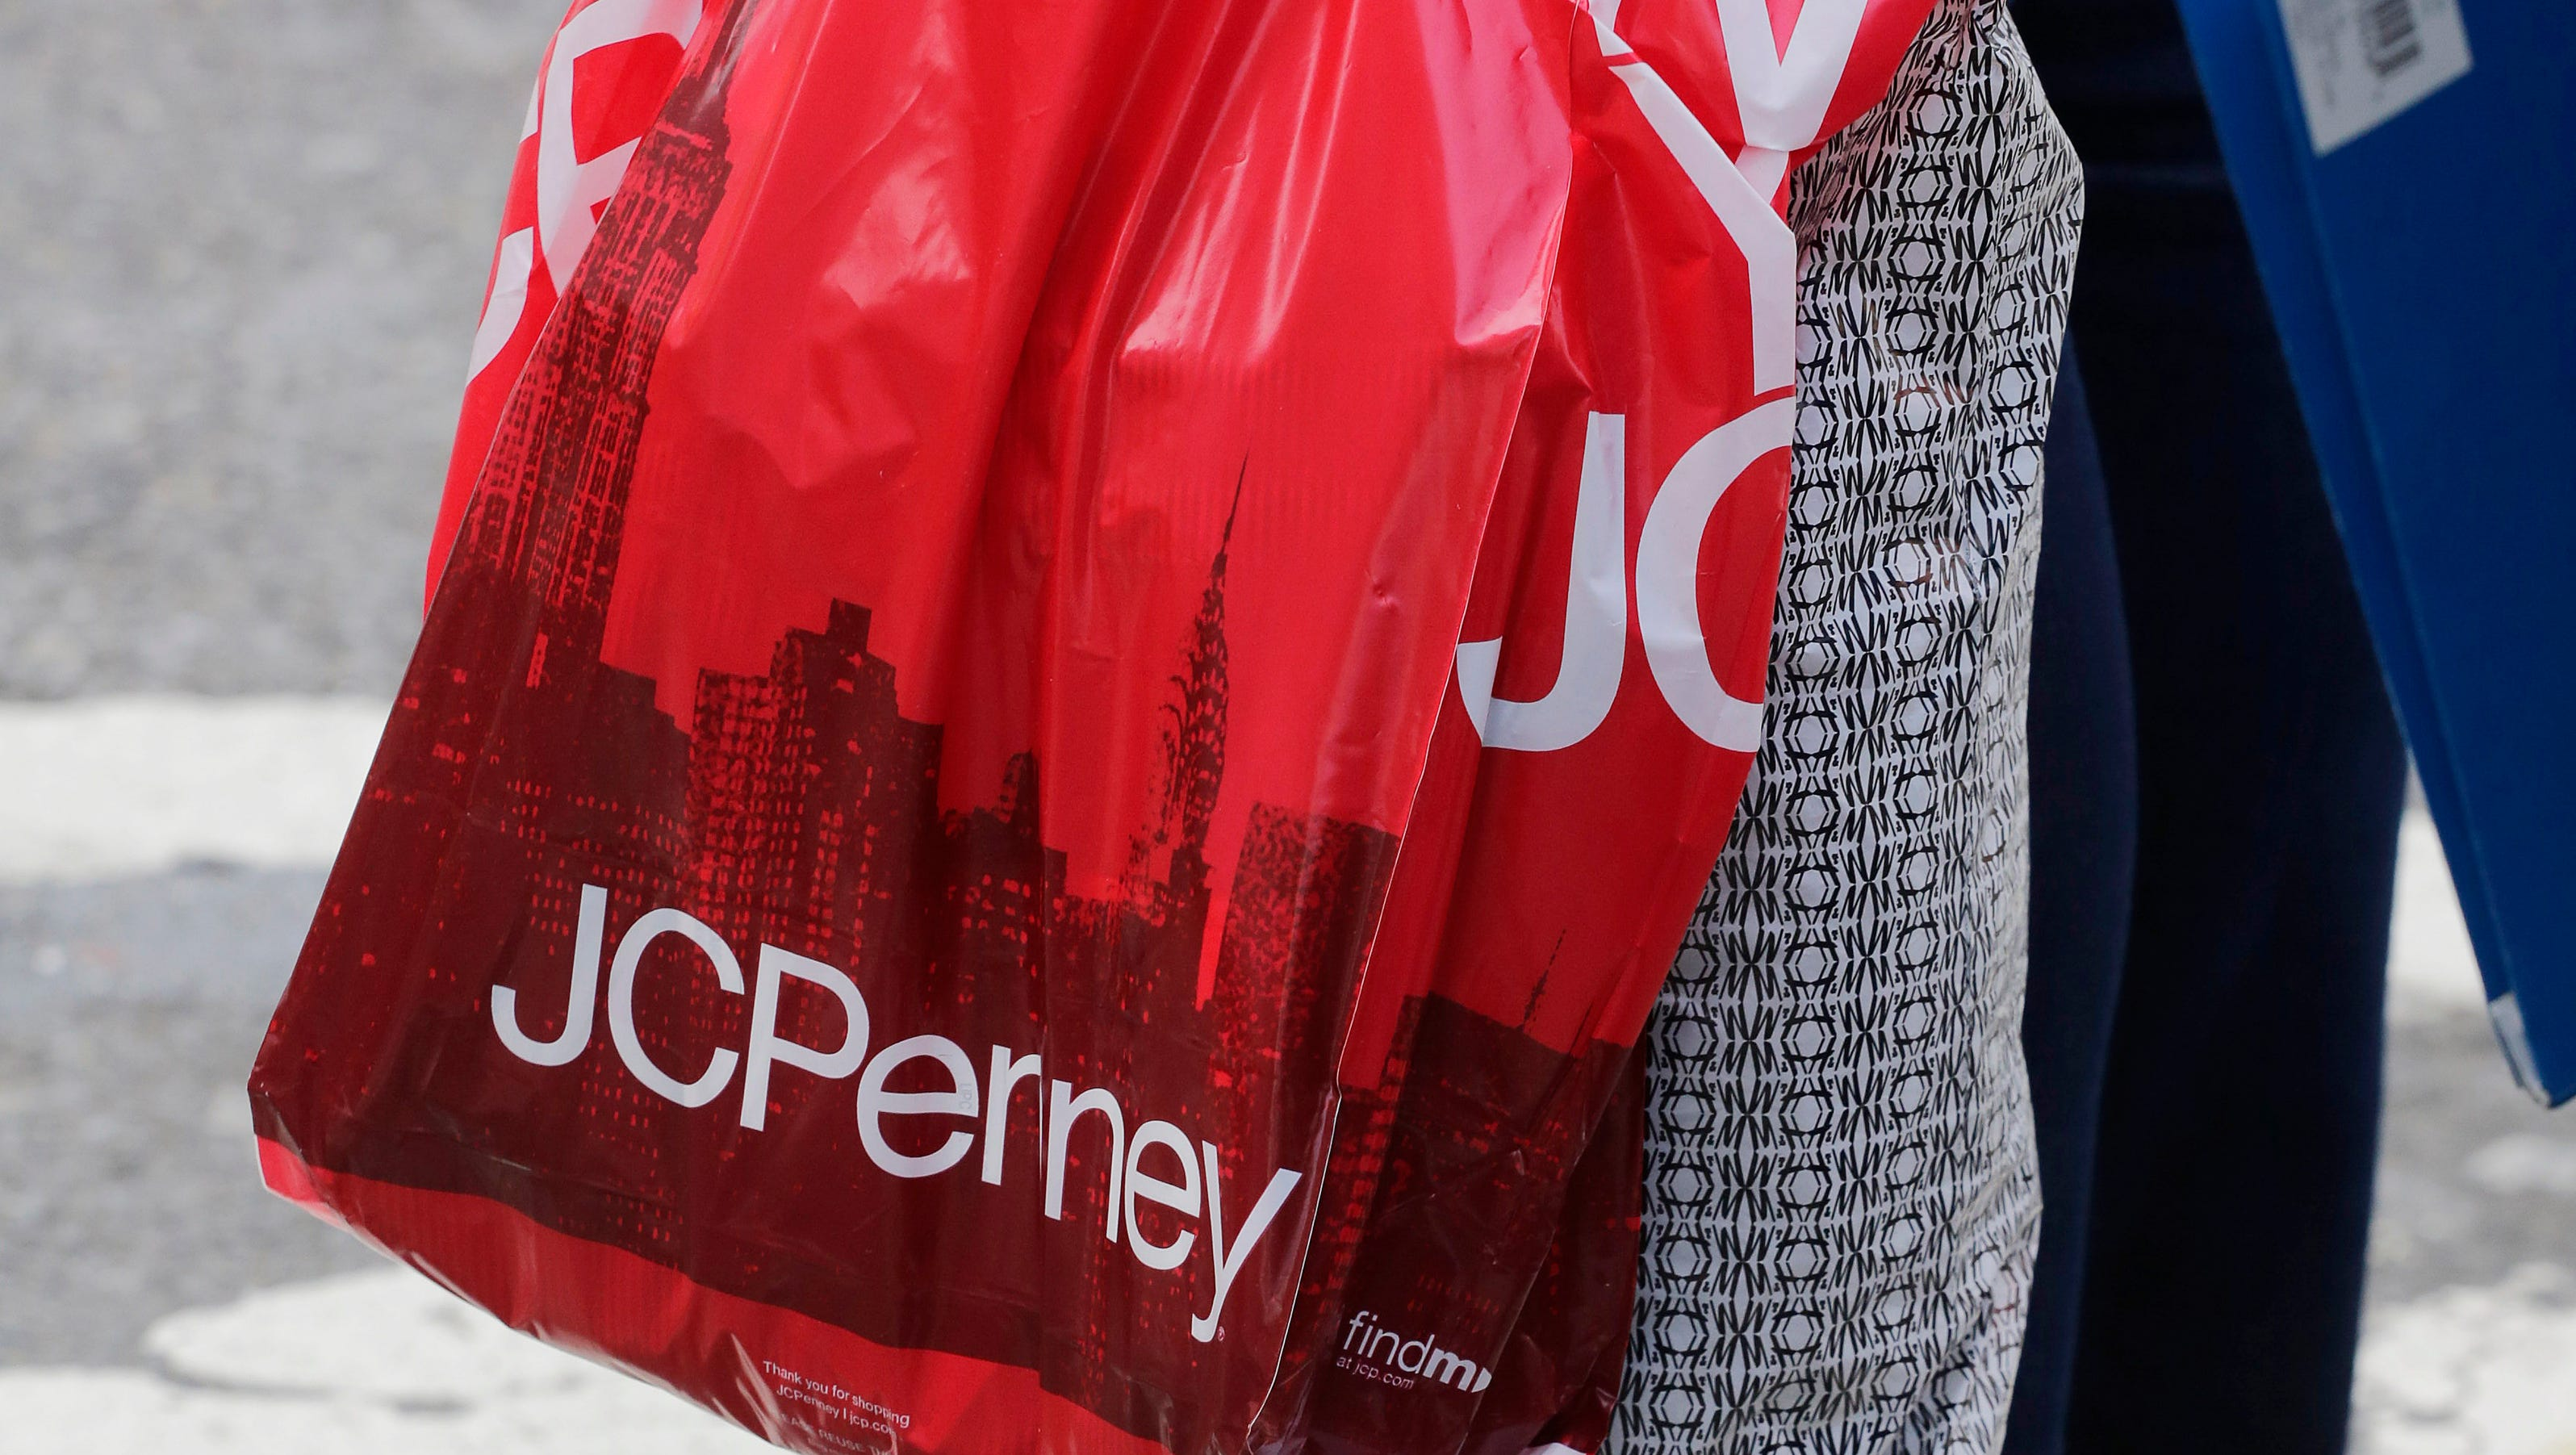 karstadt versus jc penney Jc penney is testing out a new sephora format for its smaller stores as it looks to keep beauty rivals like ulta beauty and kohl's at bay.